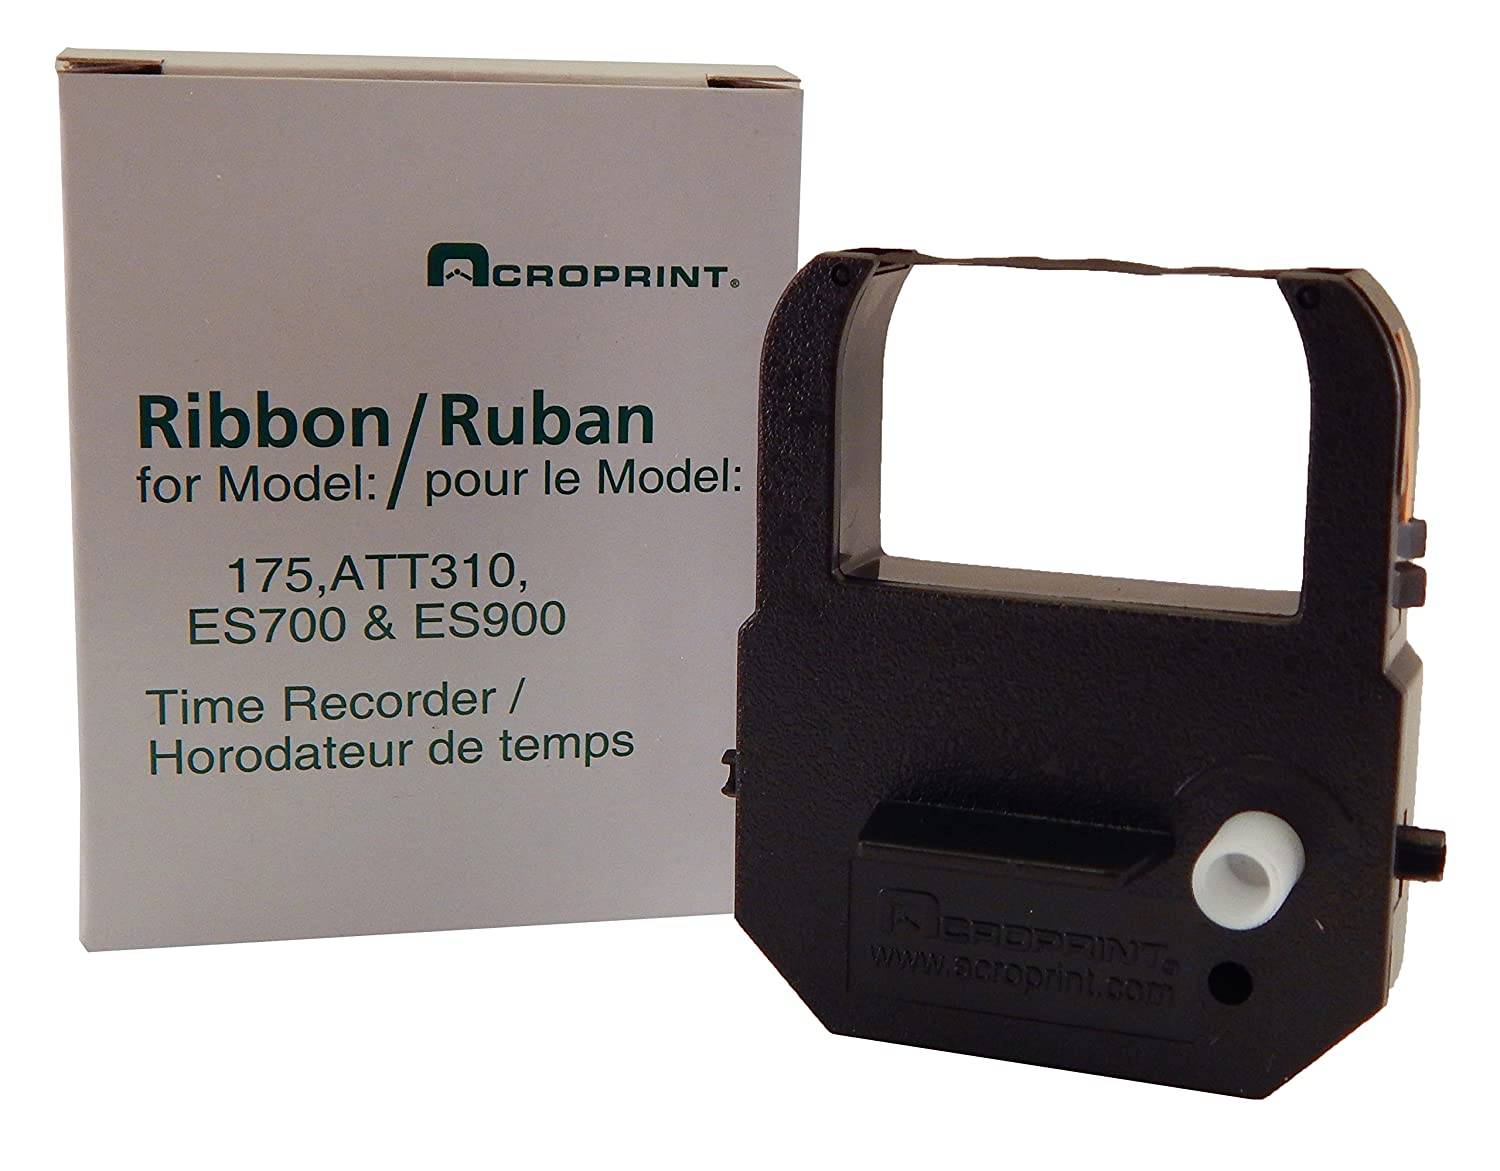 Acroprint Time Recorder Co. Acroprint 39-0121-004 Replacement Ribbon for Acroprint Model 175, Model 310, ES700 and ES900, Purple Time Clock